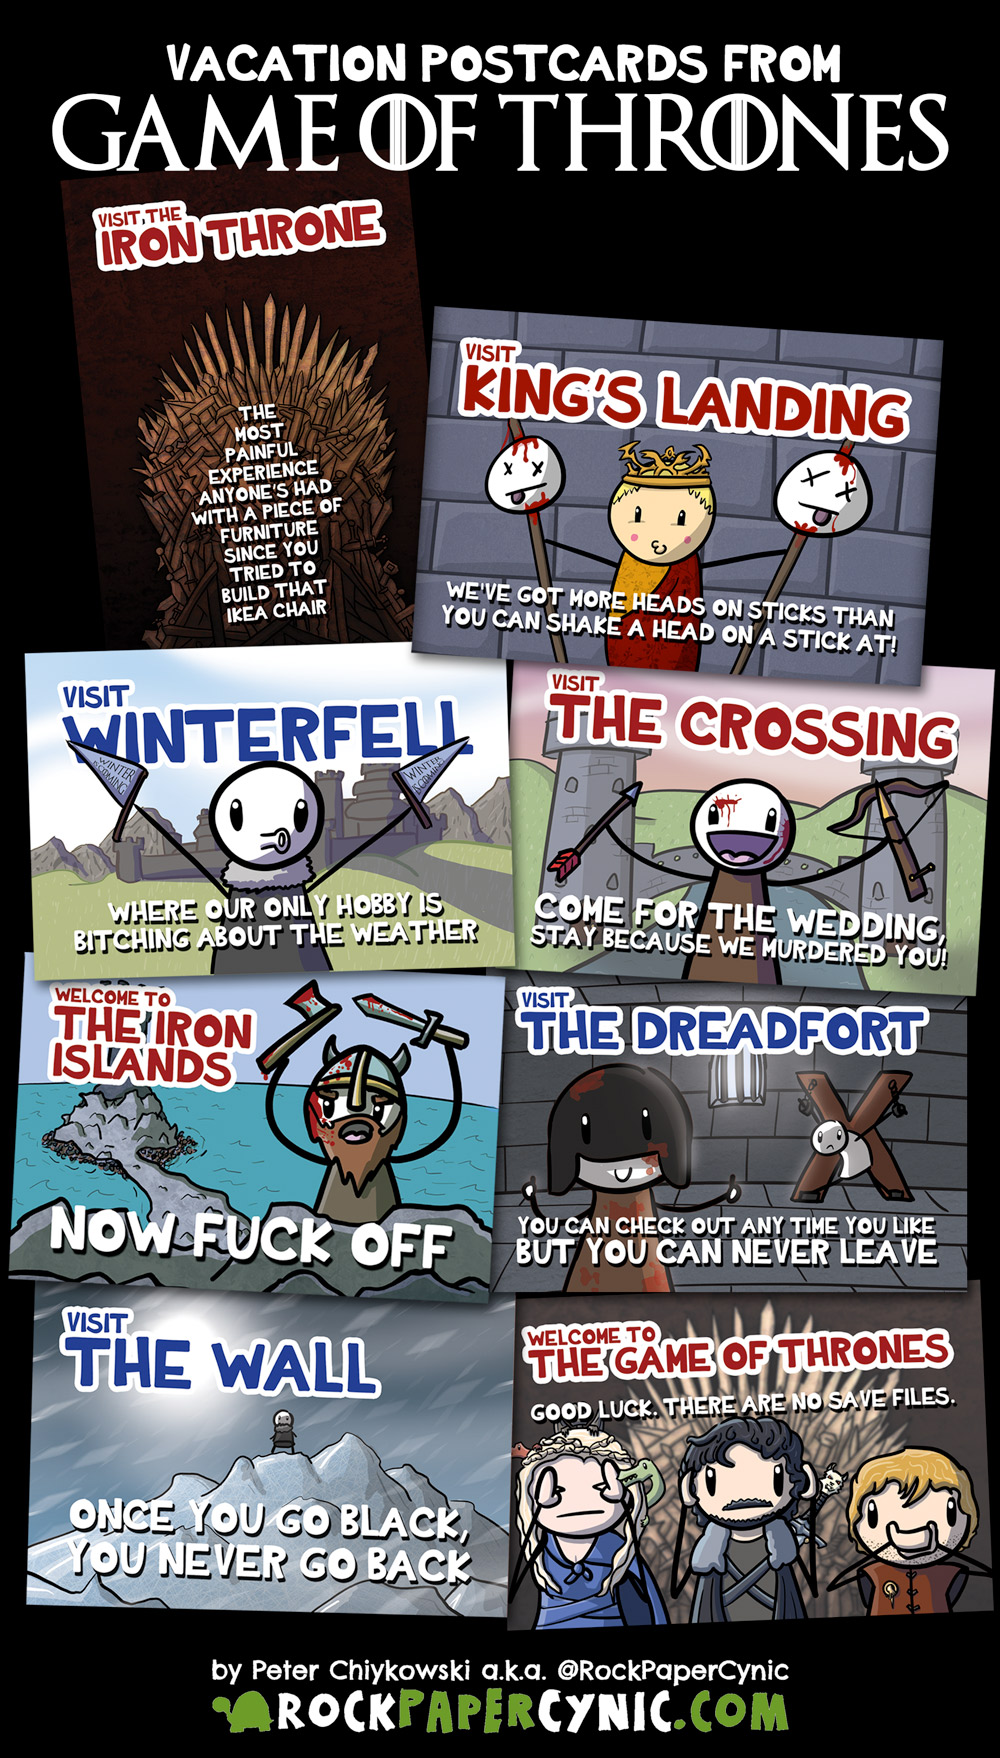 we share 8 Game of Thrones postcards you can send to your friends on your next vacation in Westeros!